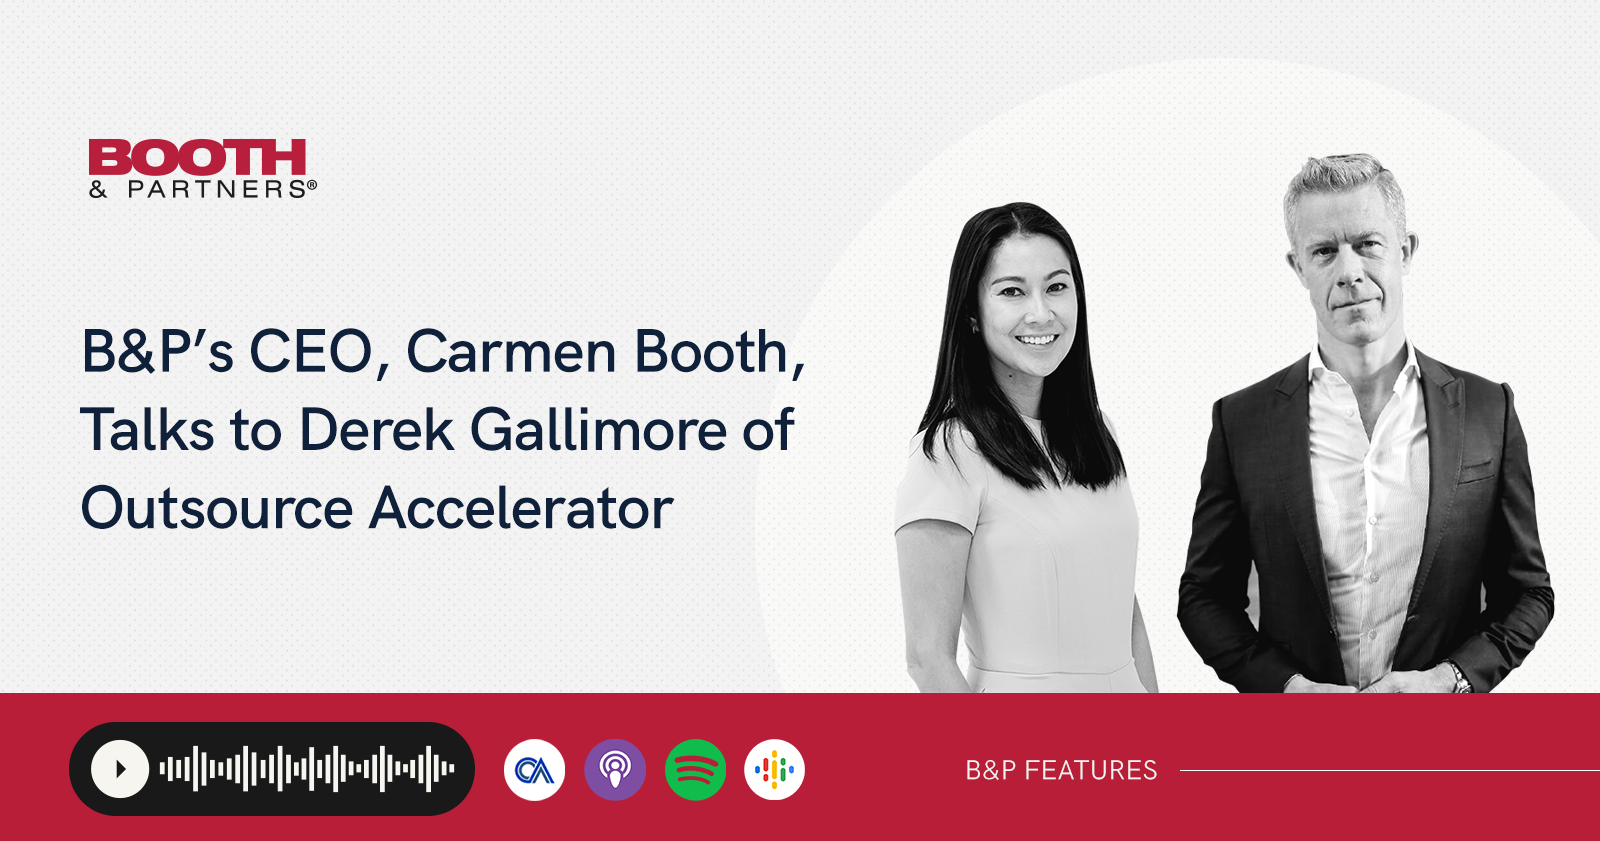 Booth & Partners' CEO, Carmen Booth, Talks to Derek Gallimore of Outsource Accelerator